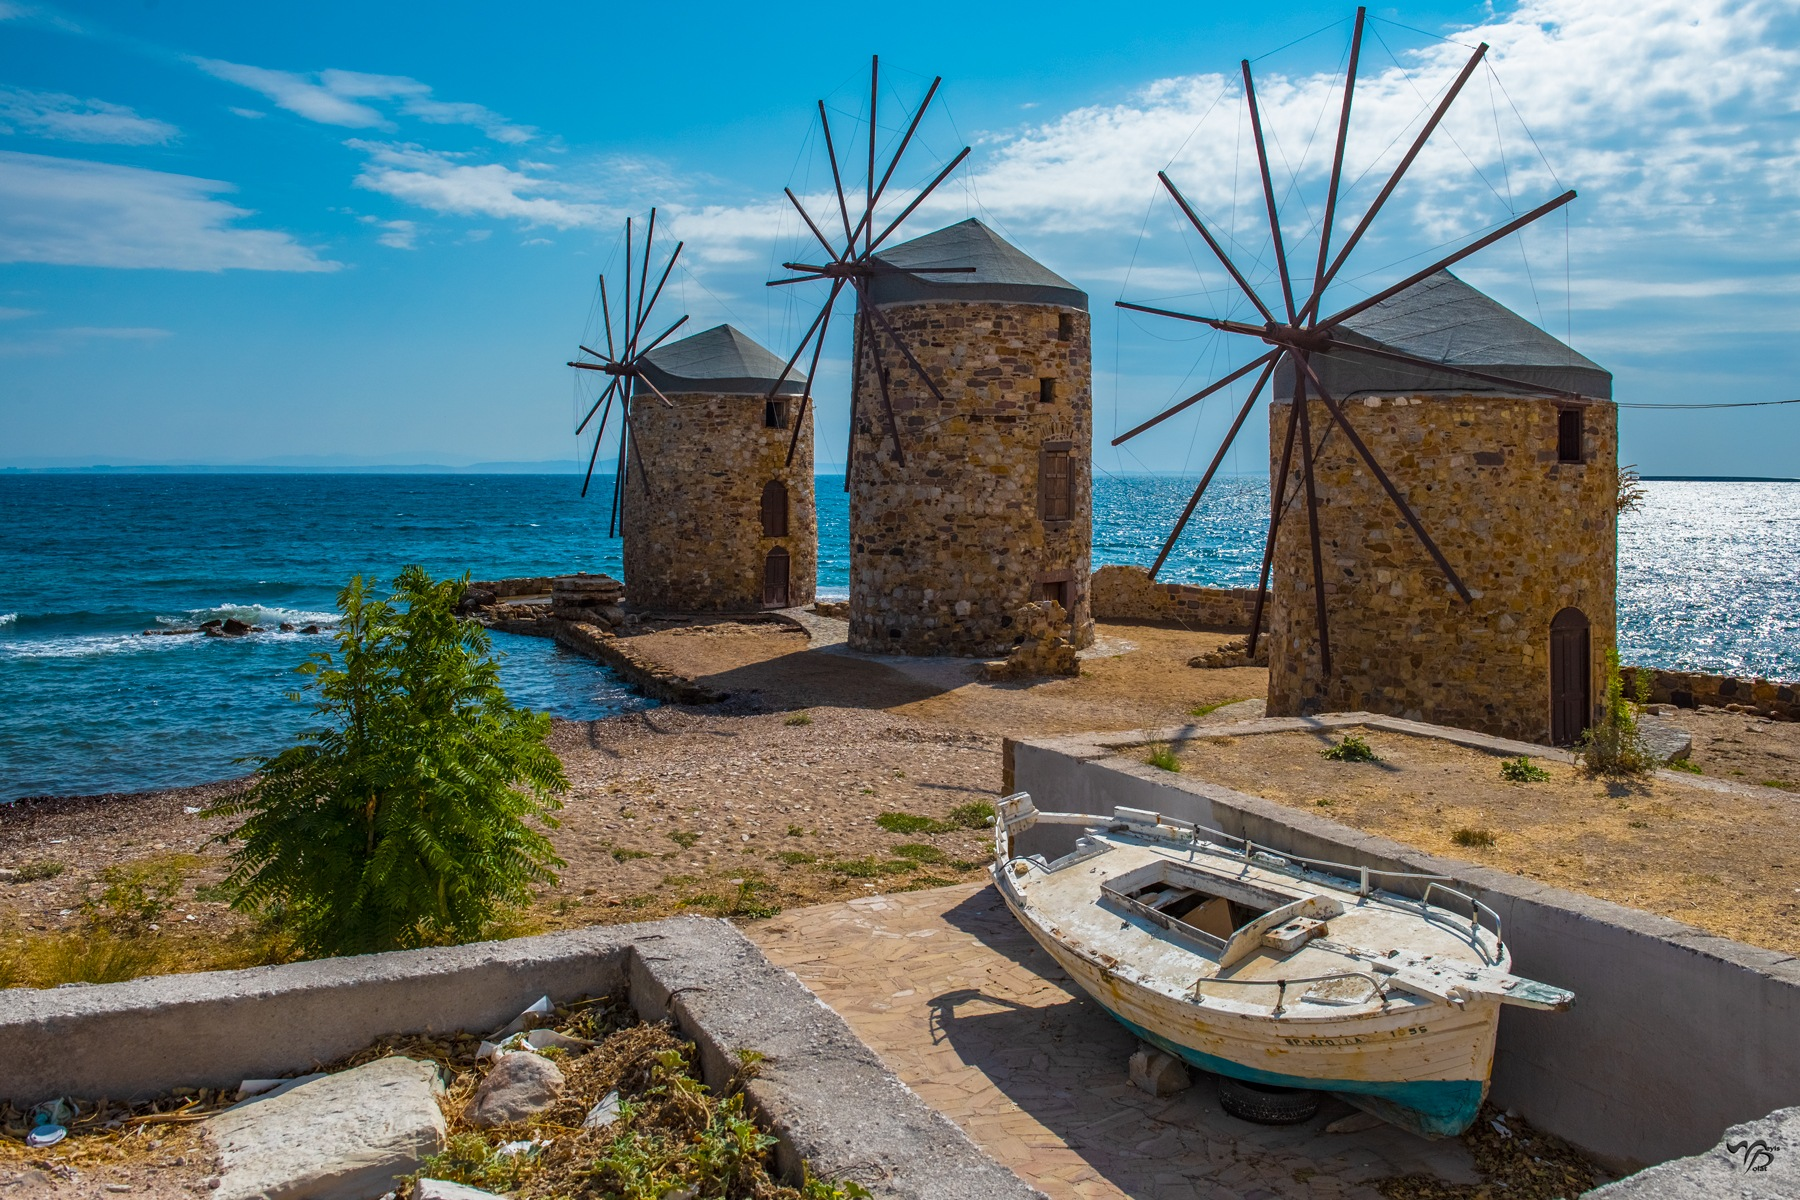 Windmills on the island of Chios... by Dedem